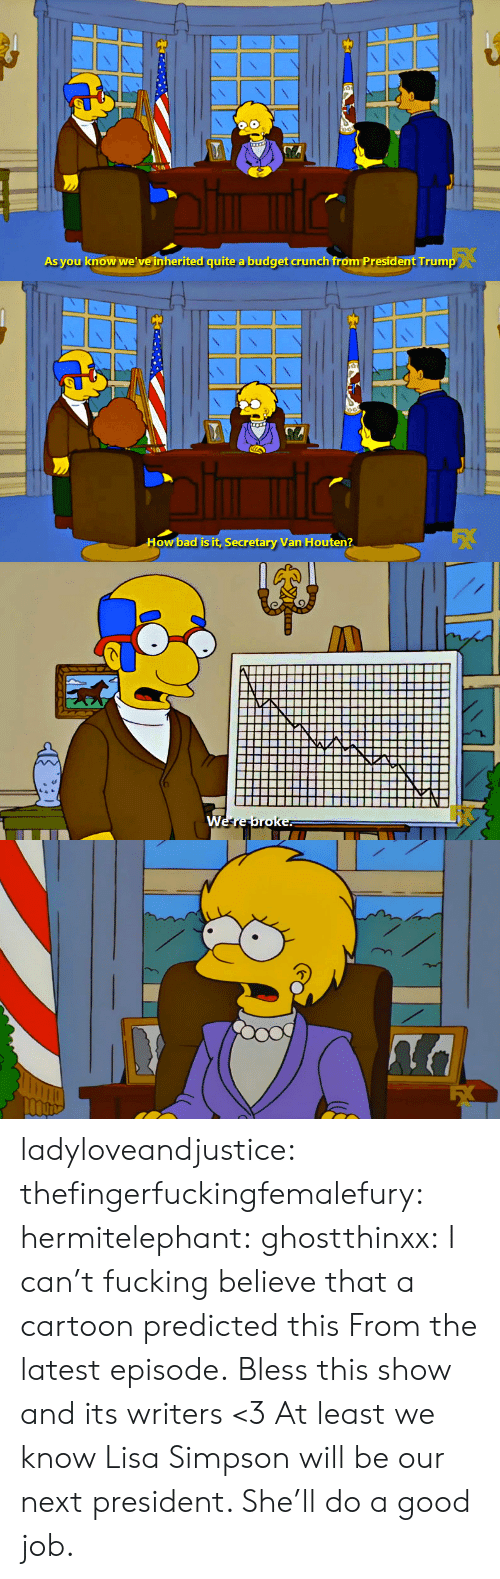 Bad, Lisa Simpson, and Tumblr: As you know we' ve inherited quite a budget crunch froóm President Trump   How bad is it, Secretary Van Houten? ladyloveandjustice:  thefingerfuckingfemalefury:  hermitelephant:  ghostthinxx:  I can't fucking believe that a cartoon predicted this   From the latest episode.  Bless this show and its writers <3  At least we know Lisa Simpson will be our next president. She'll do a good job.